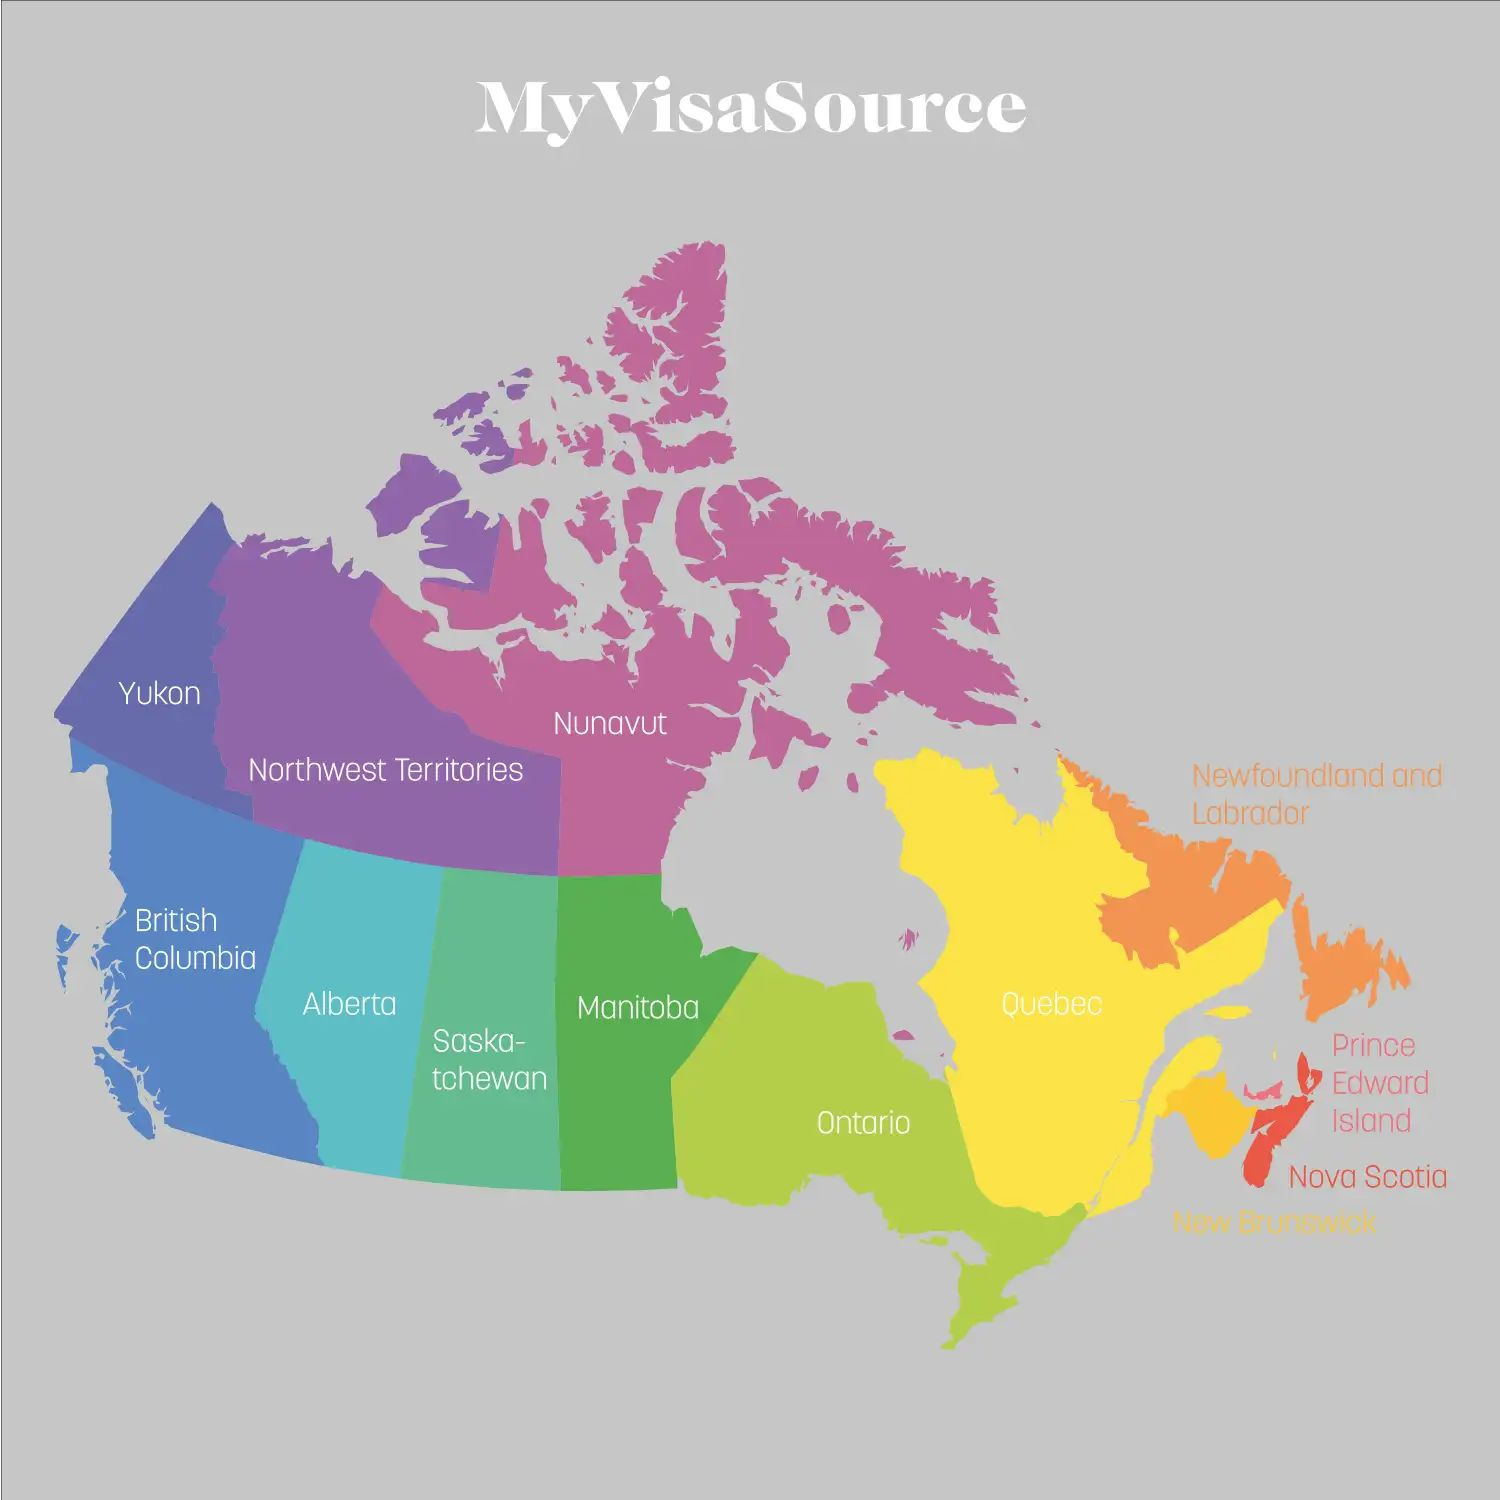 colourful-map-of-canada-with-provinces-and-territories-divided-by-bright-by-my-visa-source